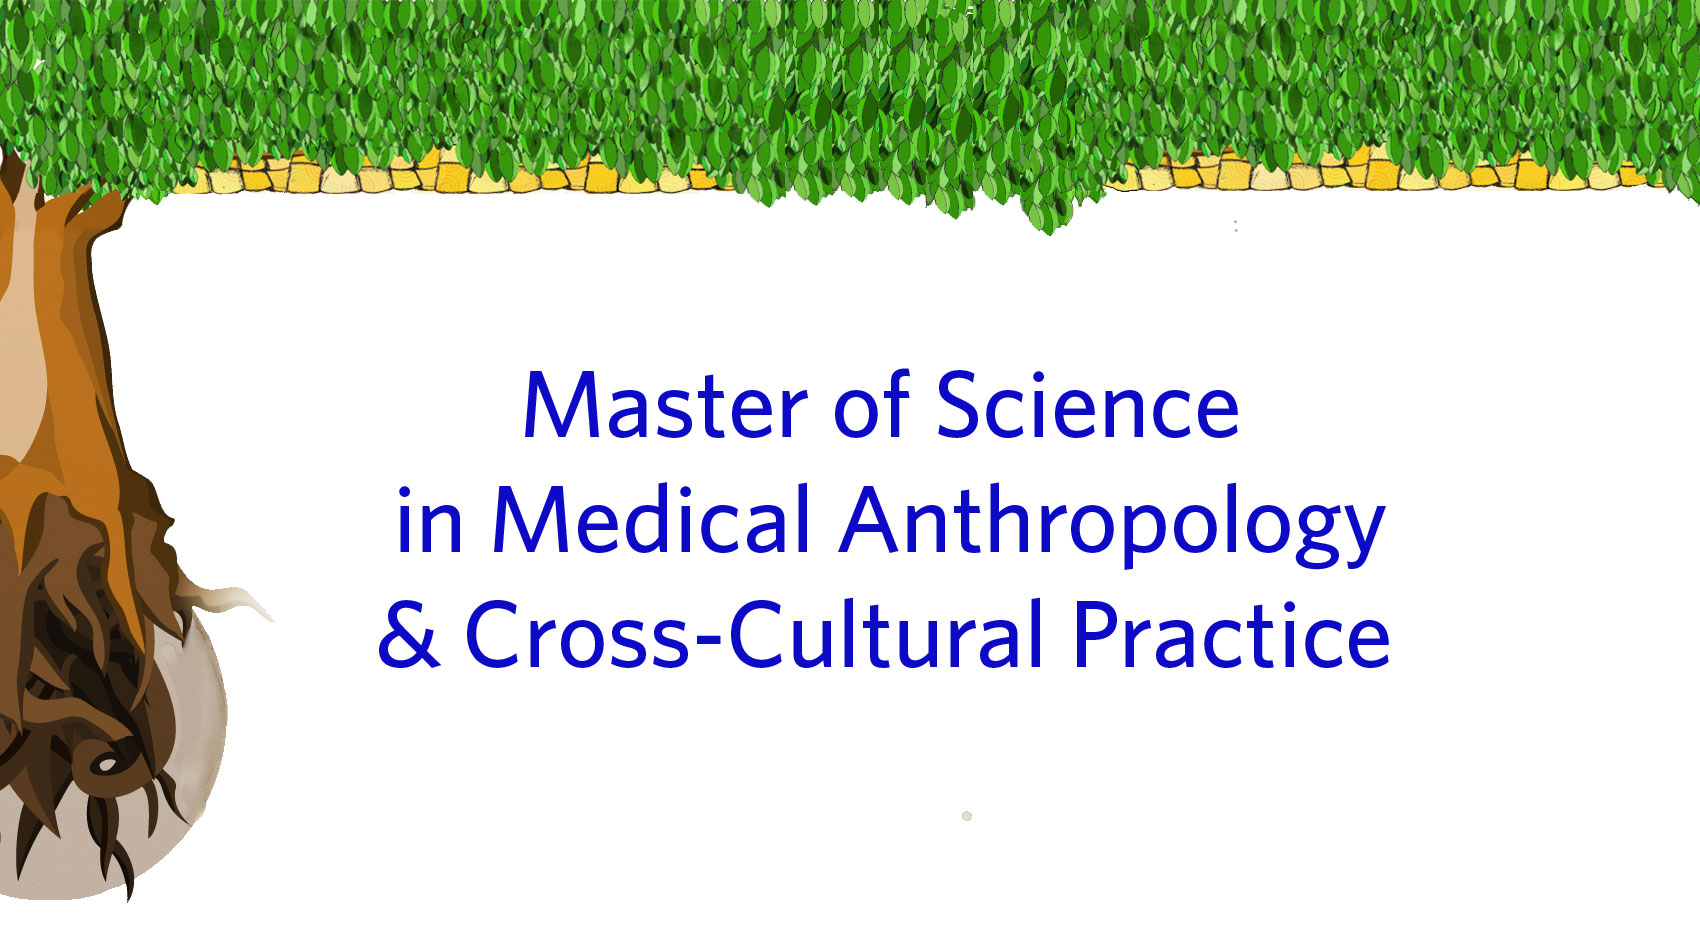 Master of Science in Medical Anthropology & Cross-Cultural Practice